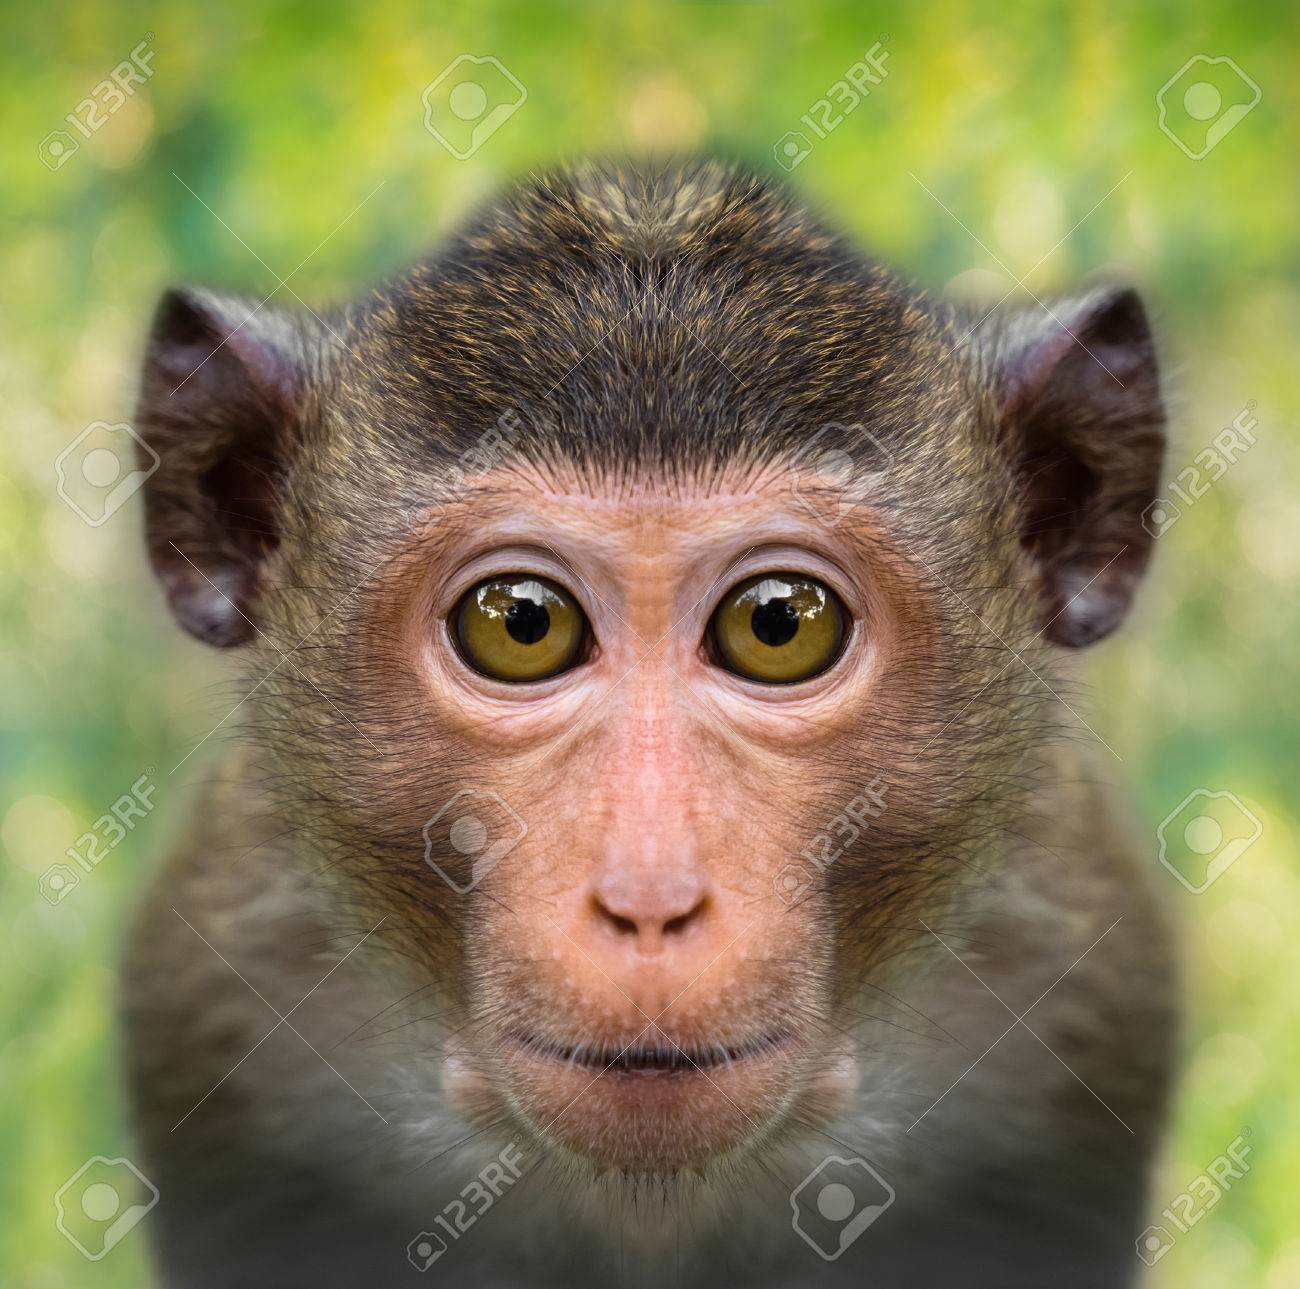 funny monkey face close up with big eyes stock photo picture and